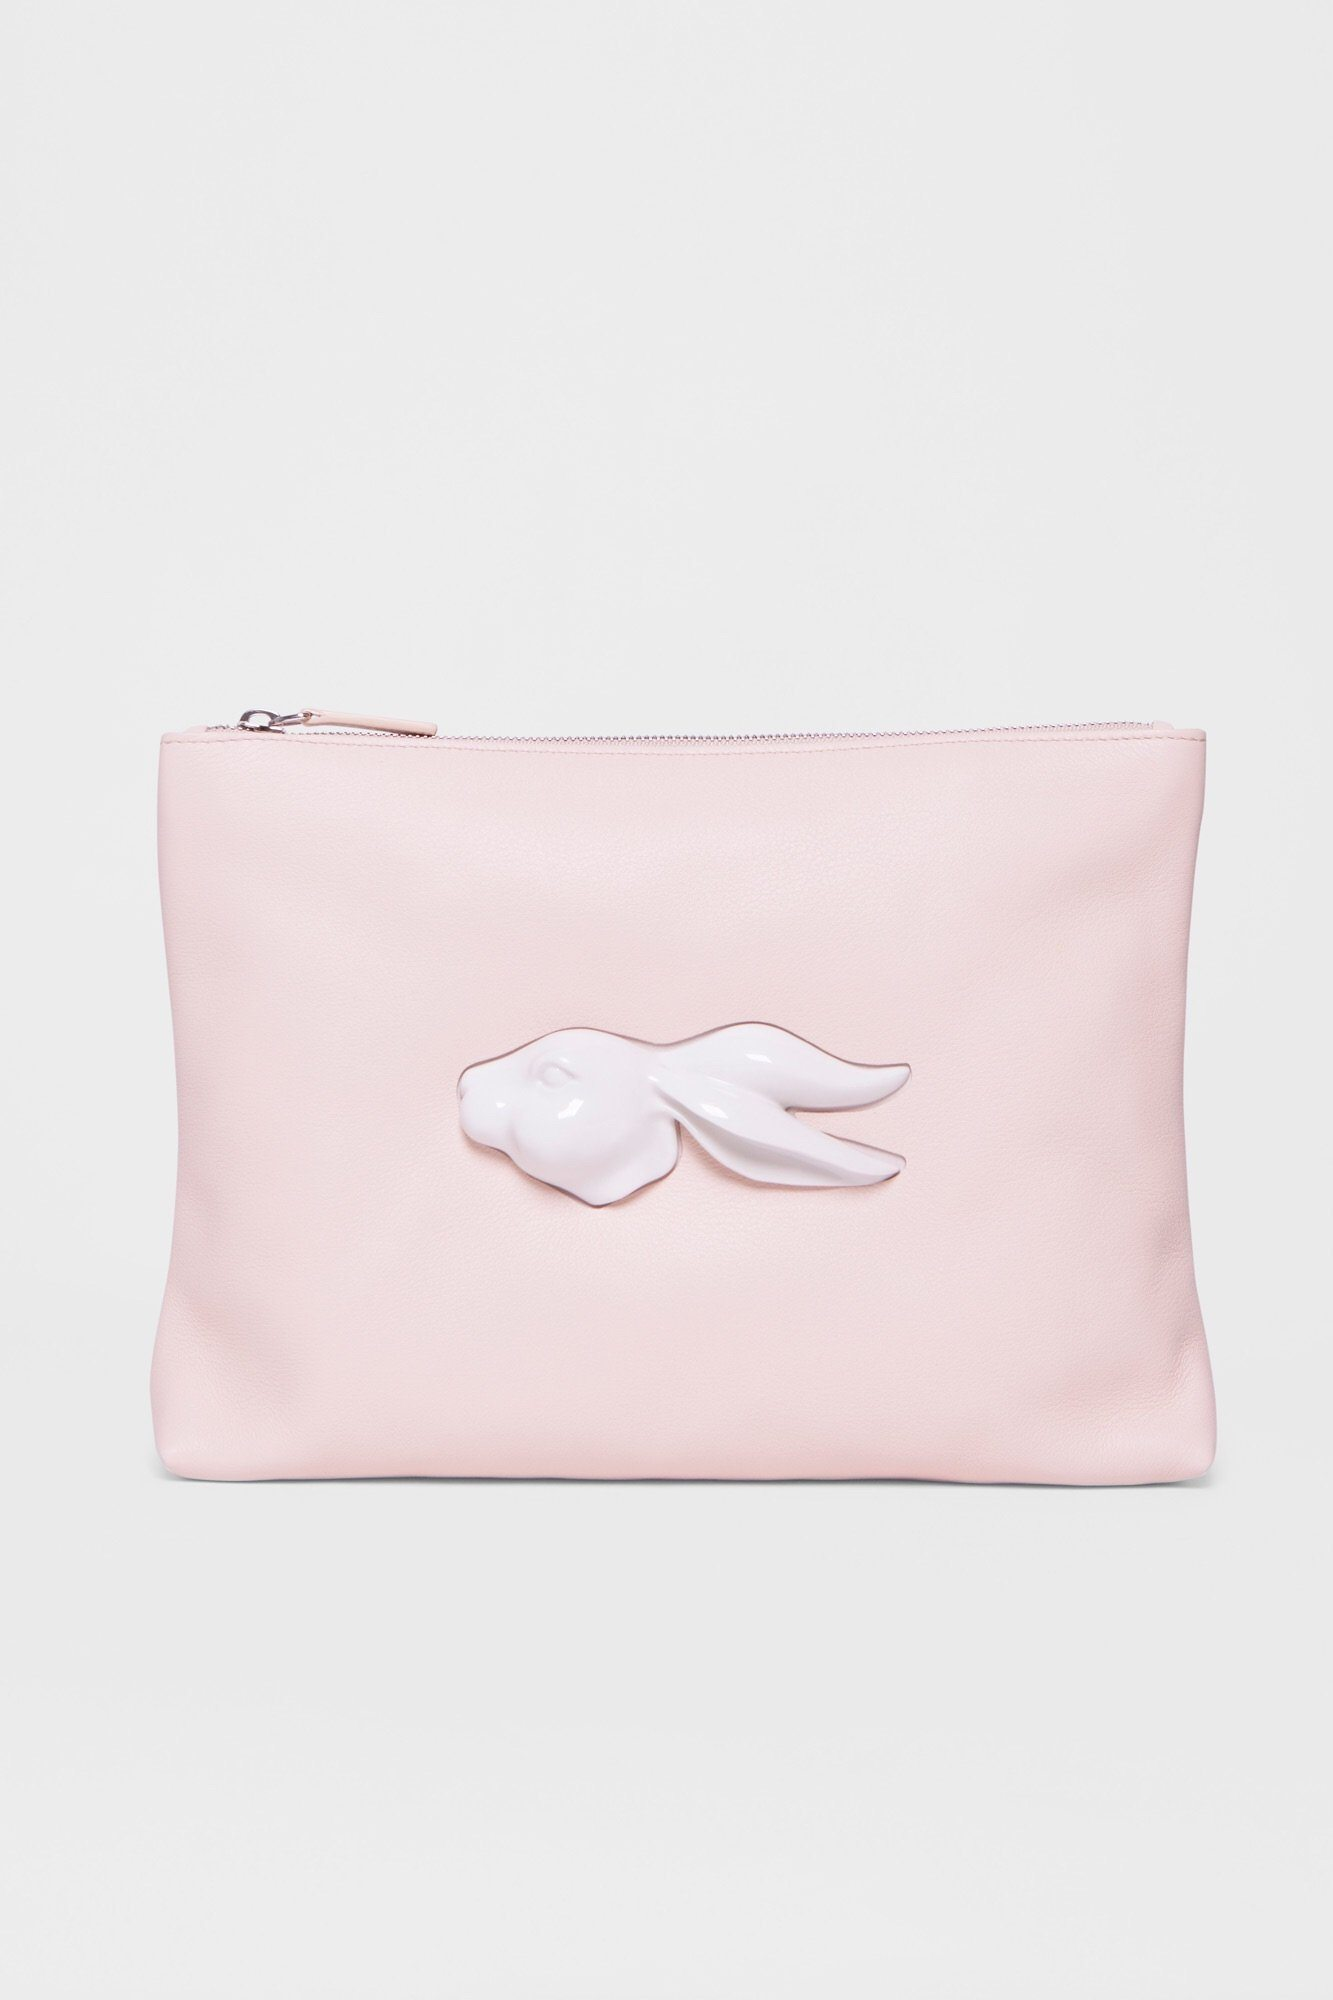 Pouch Rabbit Head Natural Handbag Andres Gallardo - der ZEITGEIST